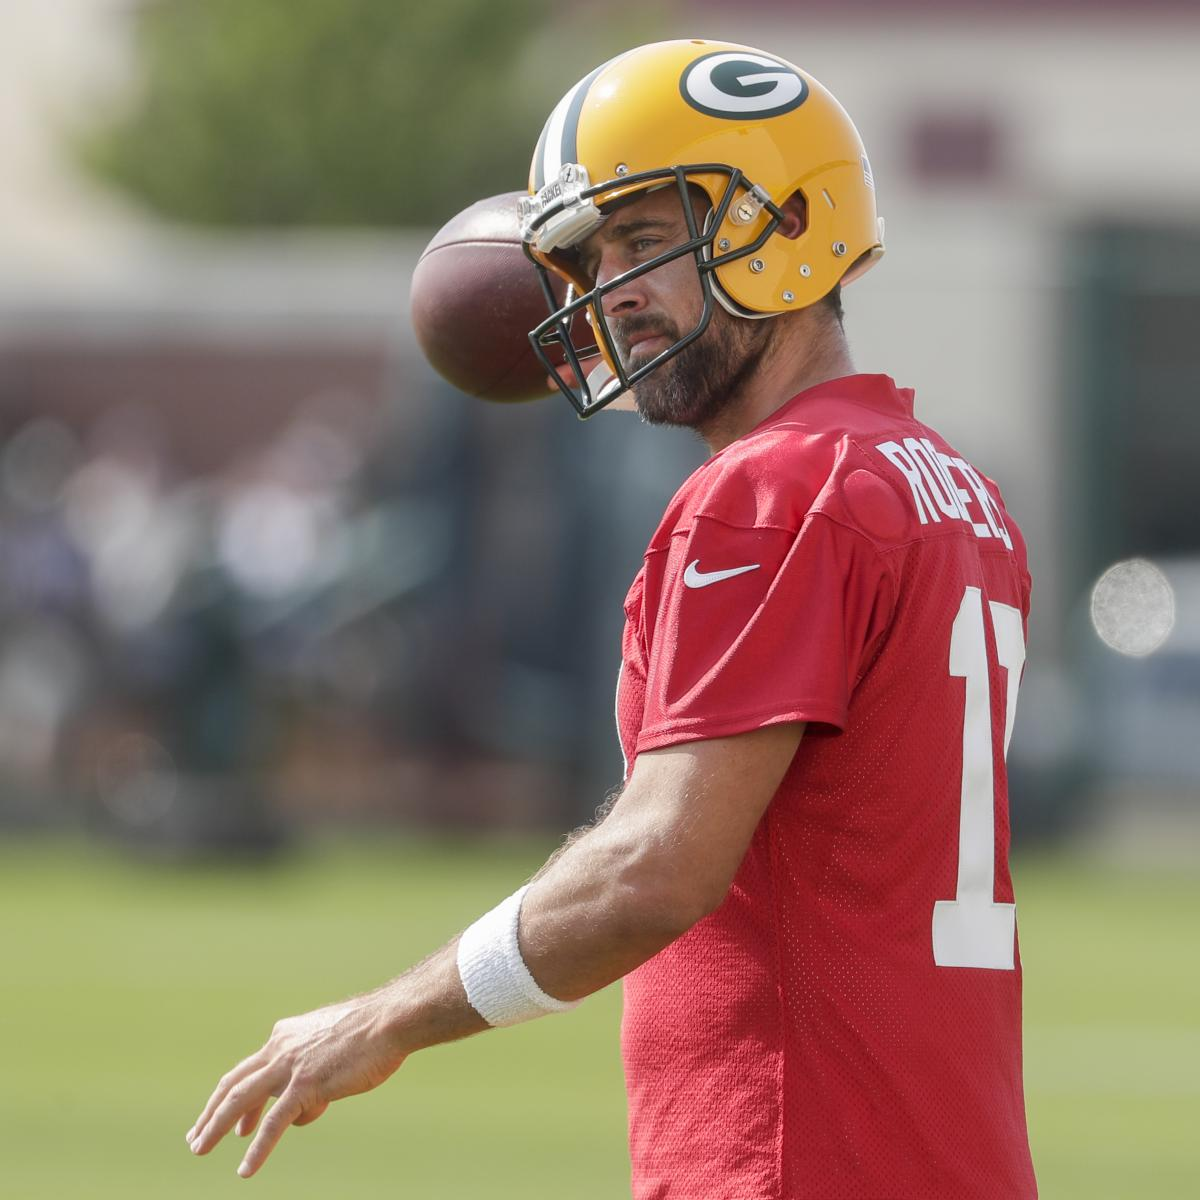 nfl-coaching-camp-buzz-roundup-aaron-rodgers-presentations-up-in-green-bay.jpg